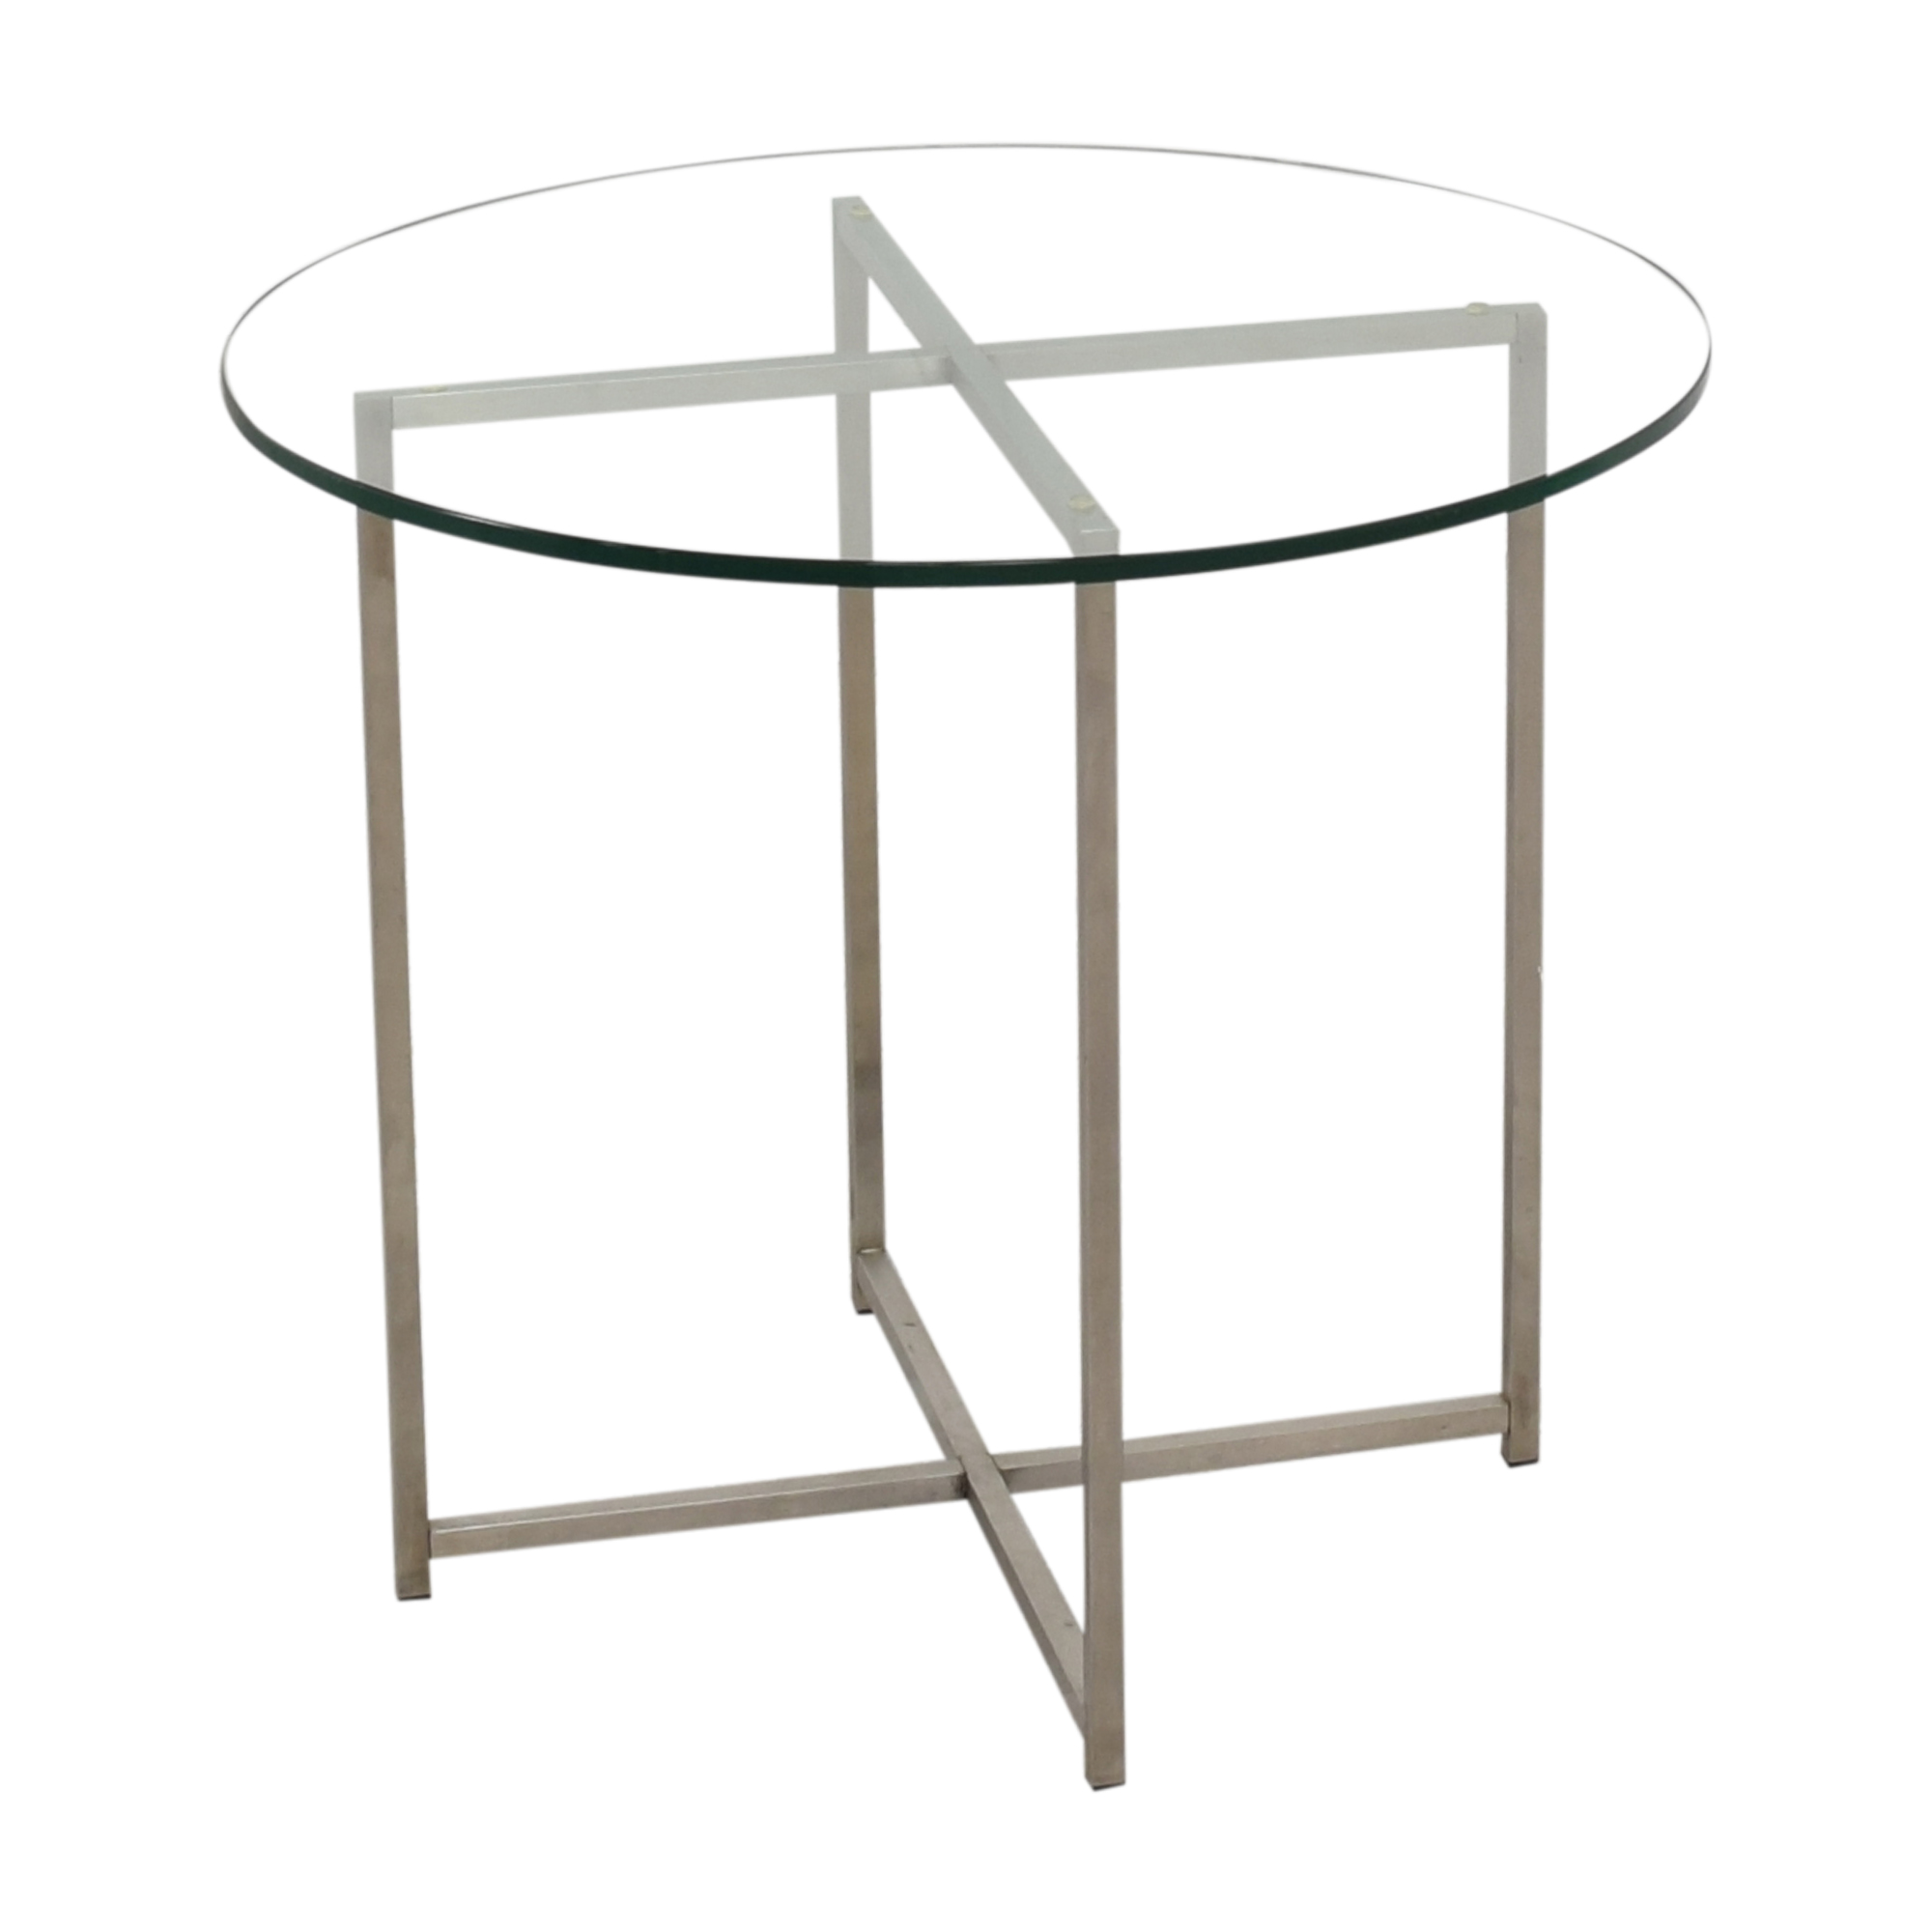 Room & Board Room & Board Classic End Table Tables